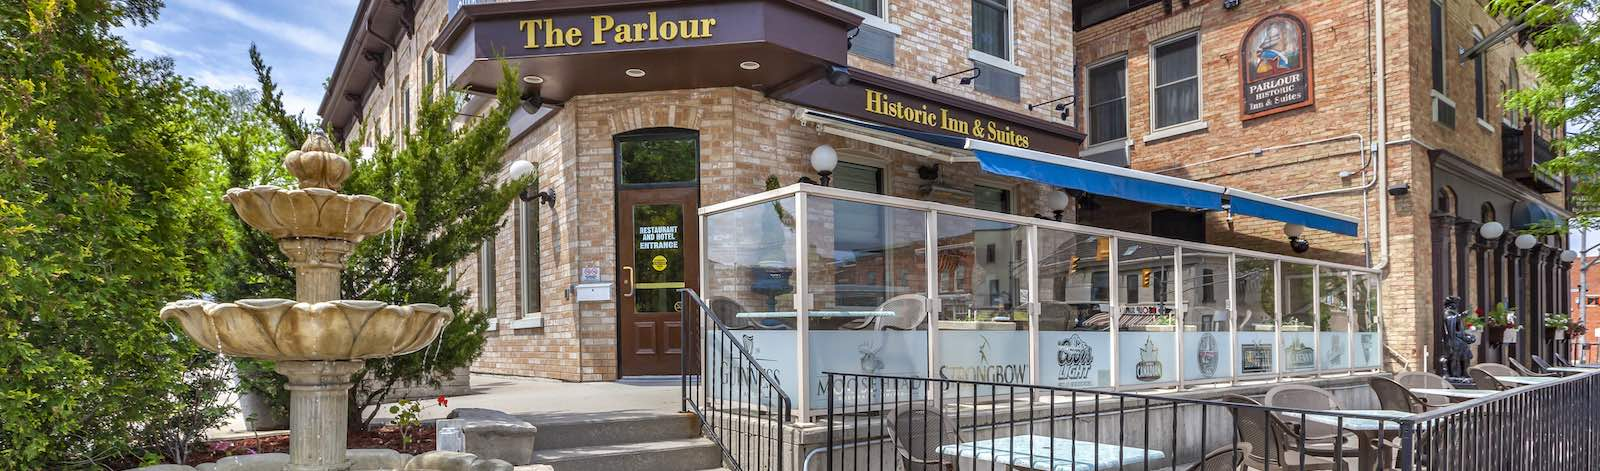 The Parlour Inn in Stratford Ontario